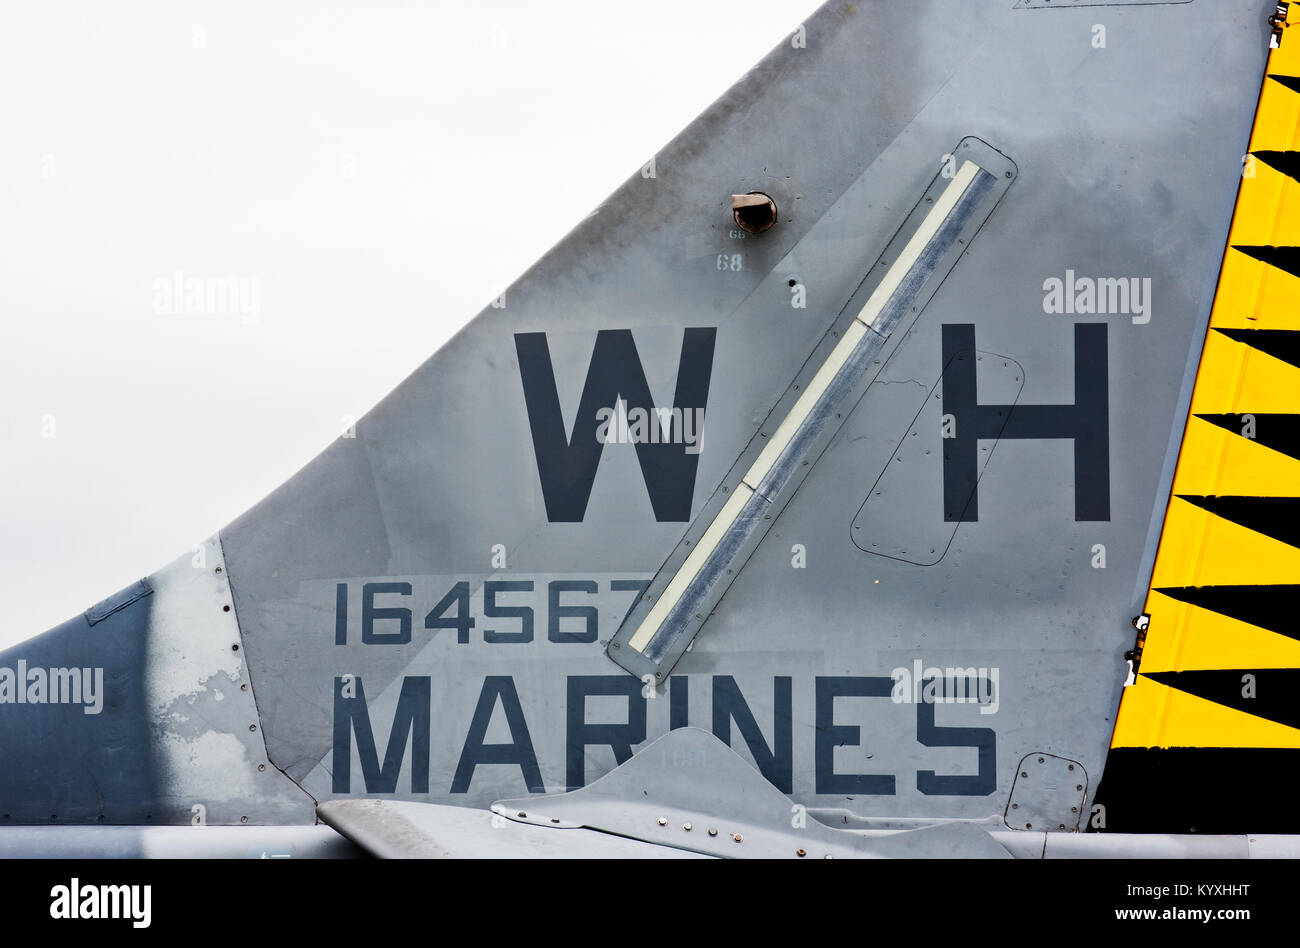 Tail of Marine Airplane at the Intrepid Sea-Air-Space Museum in Manhattan, New York City. Stock Photo